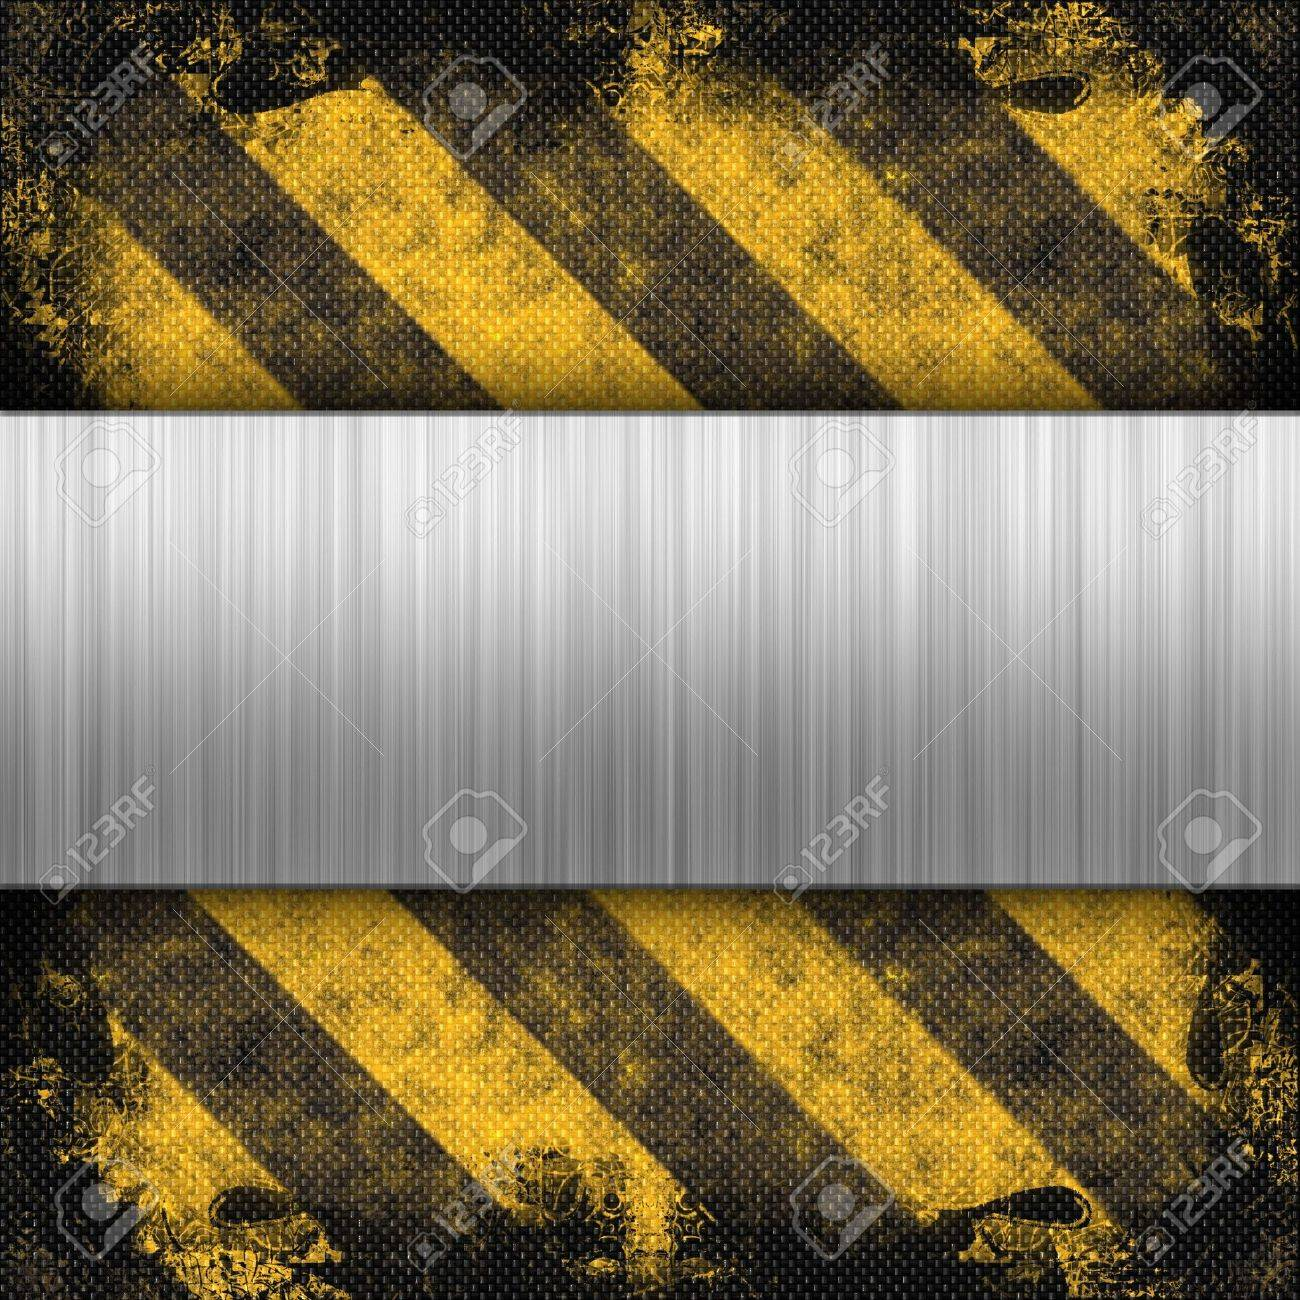 3d brushed metal layout on a grungy hazard stripes background.  This makes a great industrial layout.  The stripes have a carbon fiber look. Stock Photo - 6258522